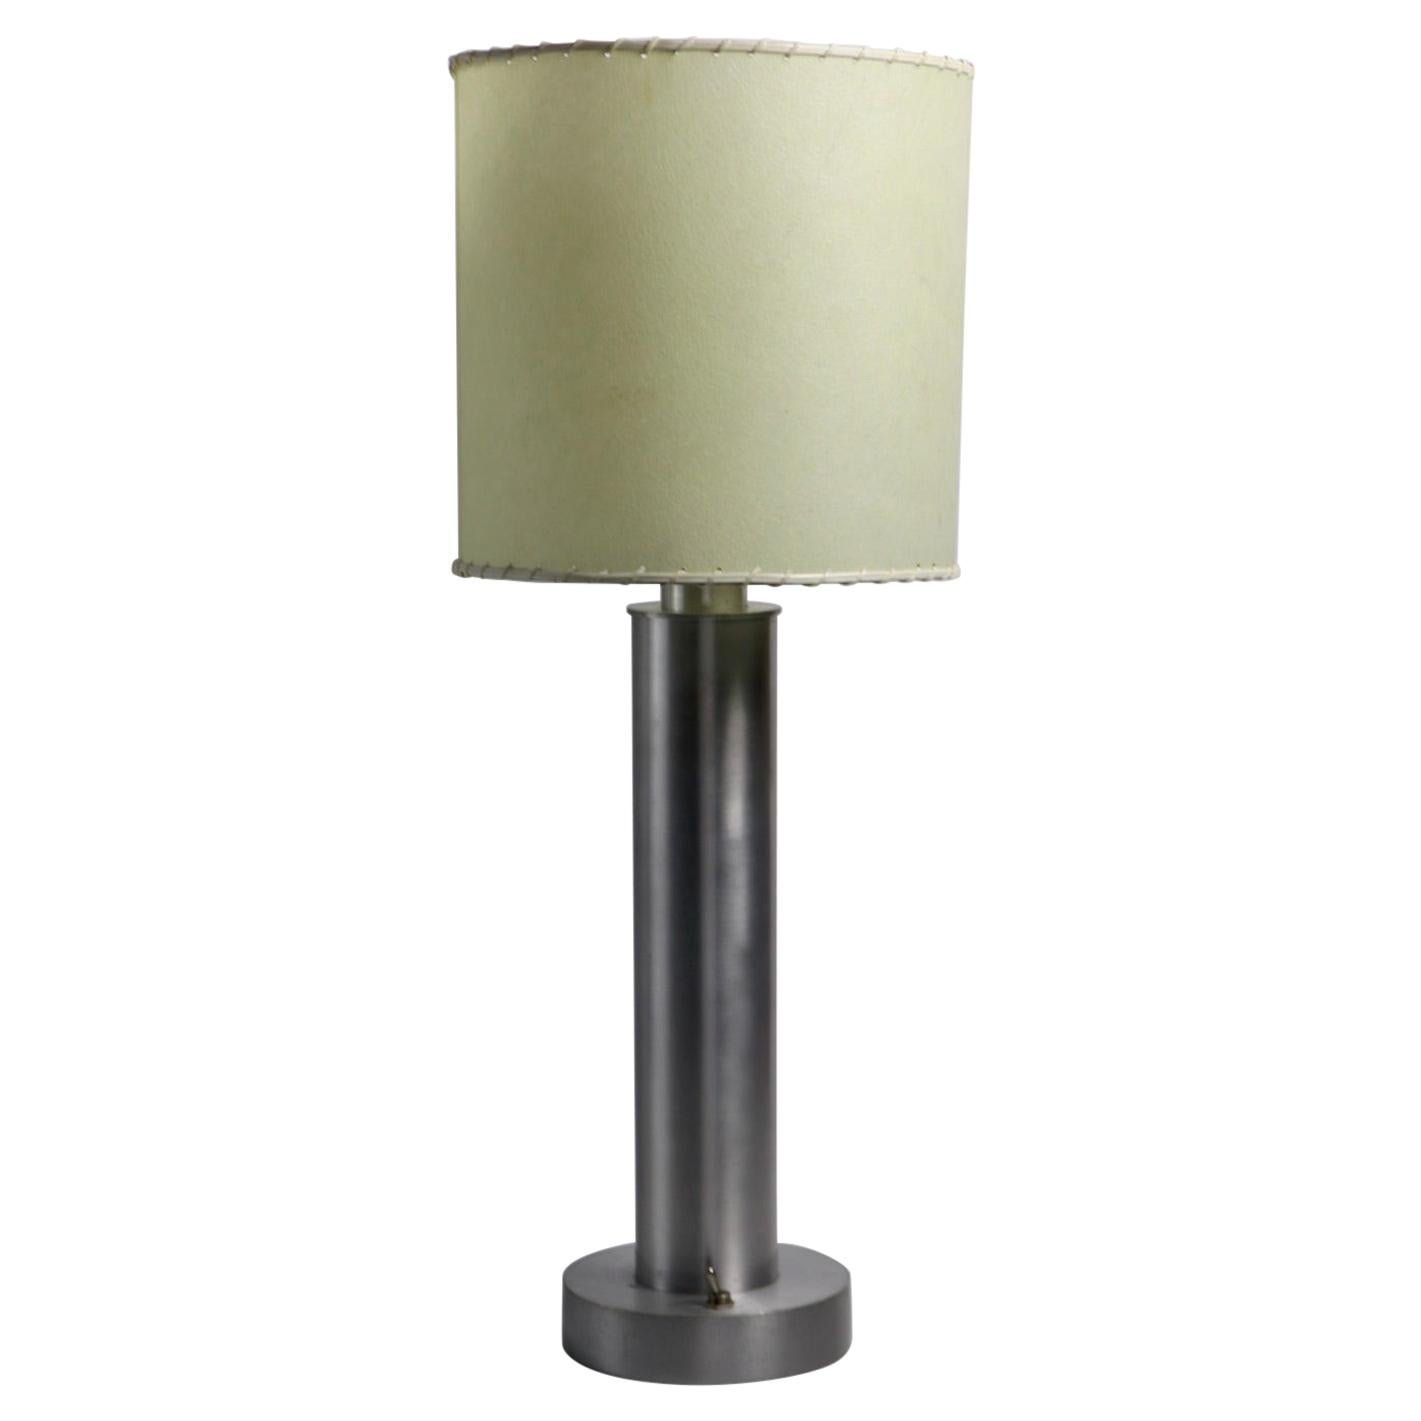 Machine Age Aluminum Base Table Lamp after Walter Von Nessen 3 Available